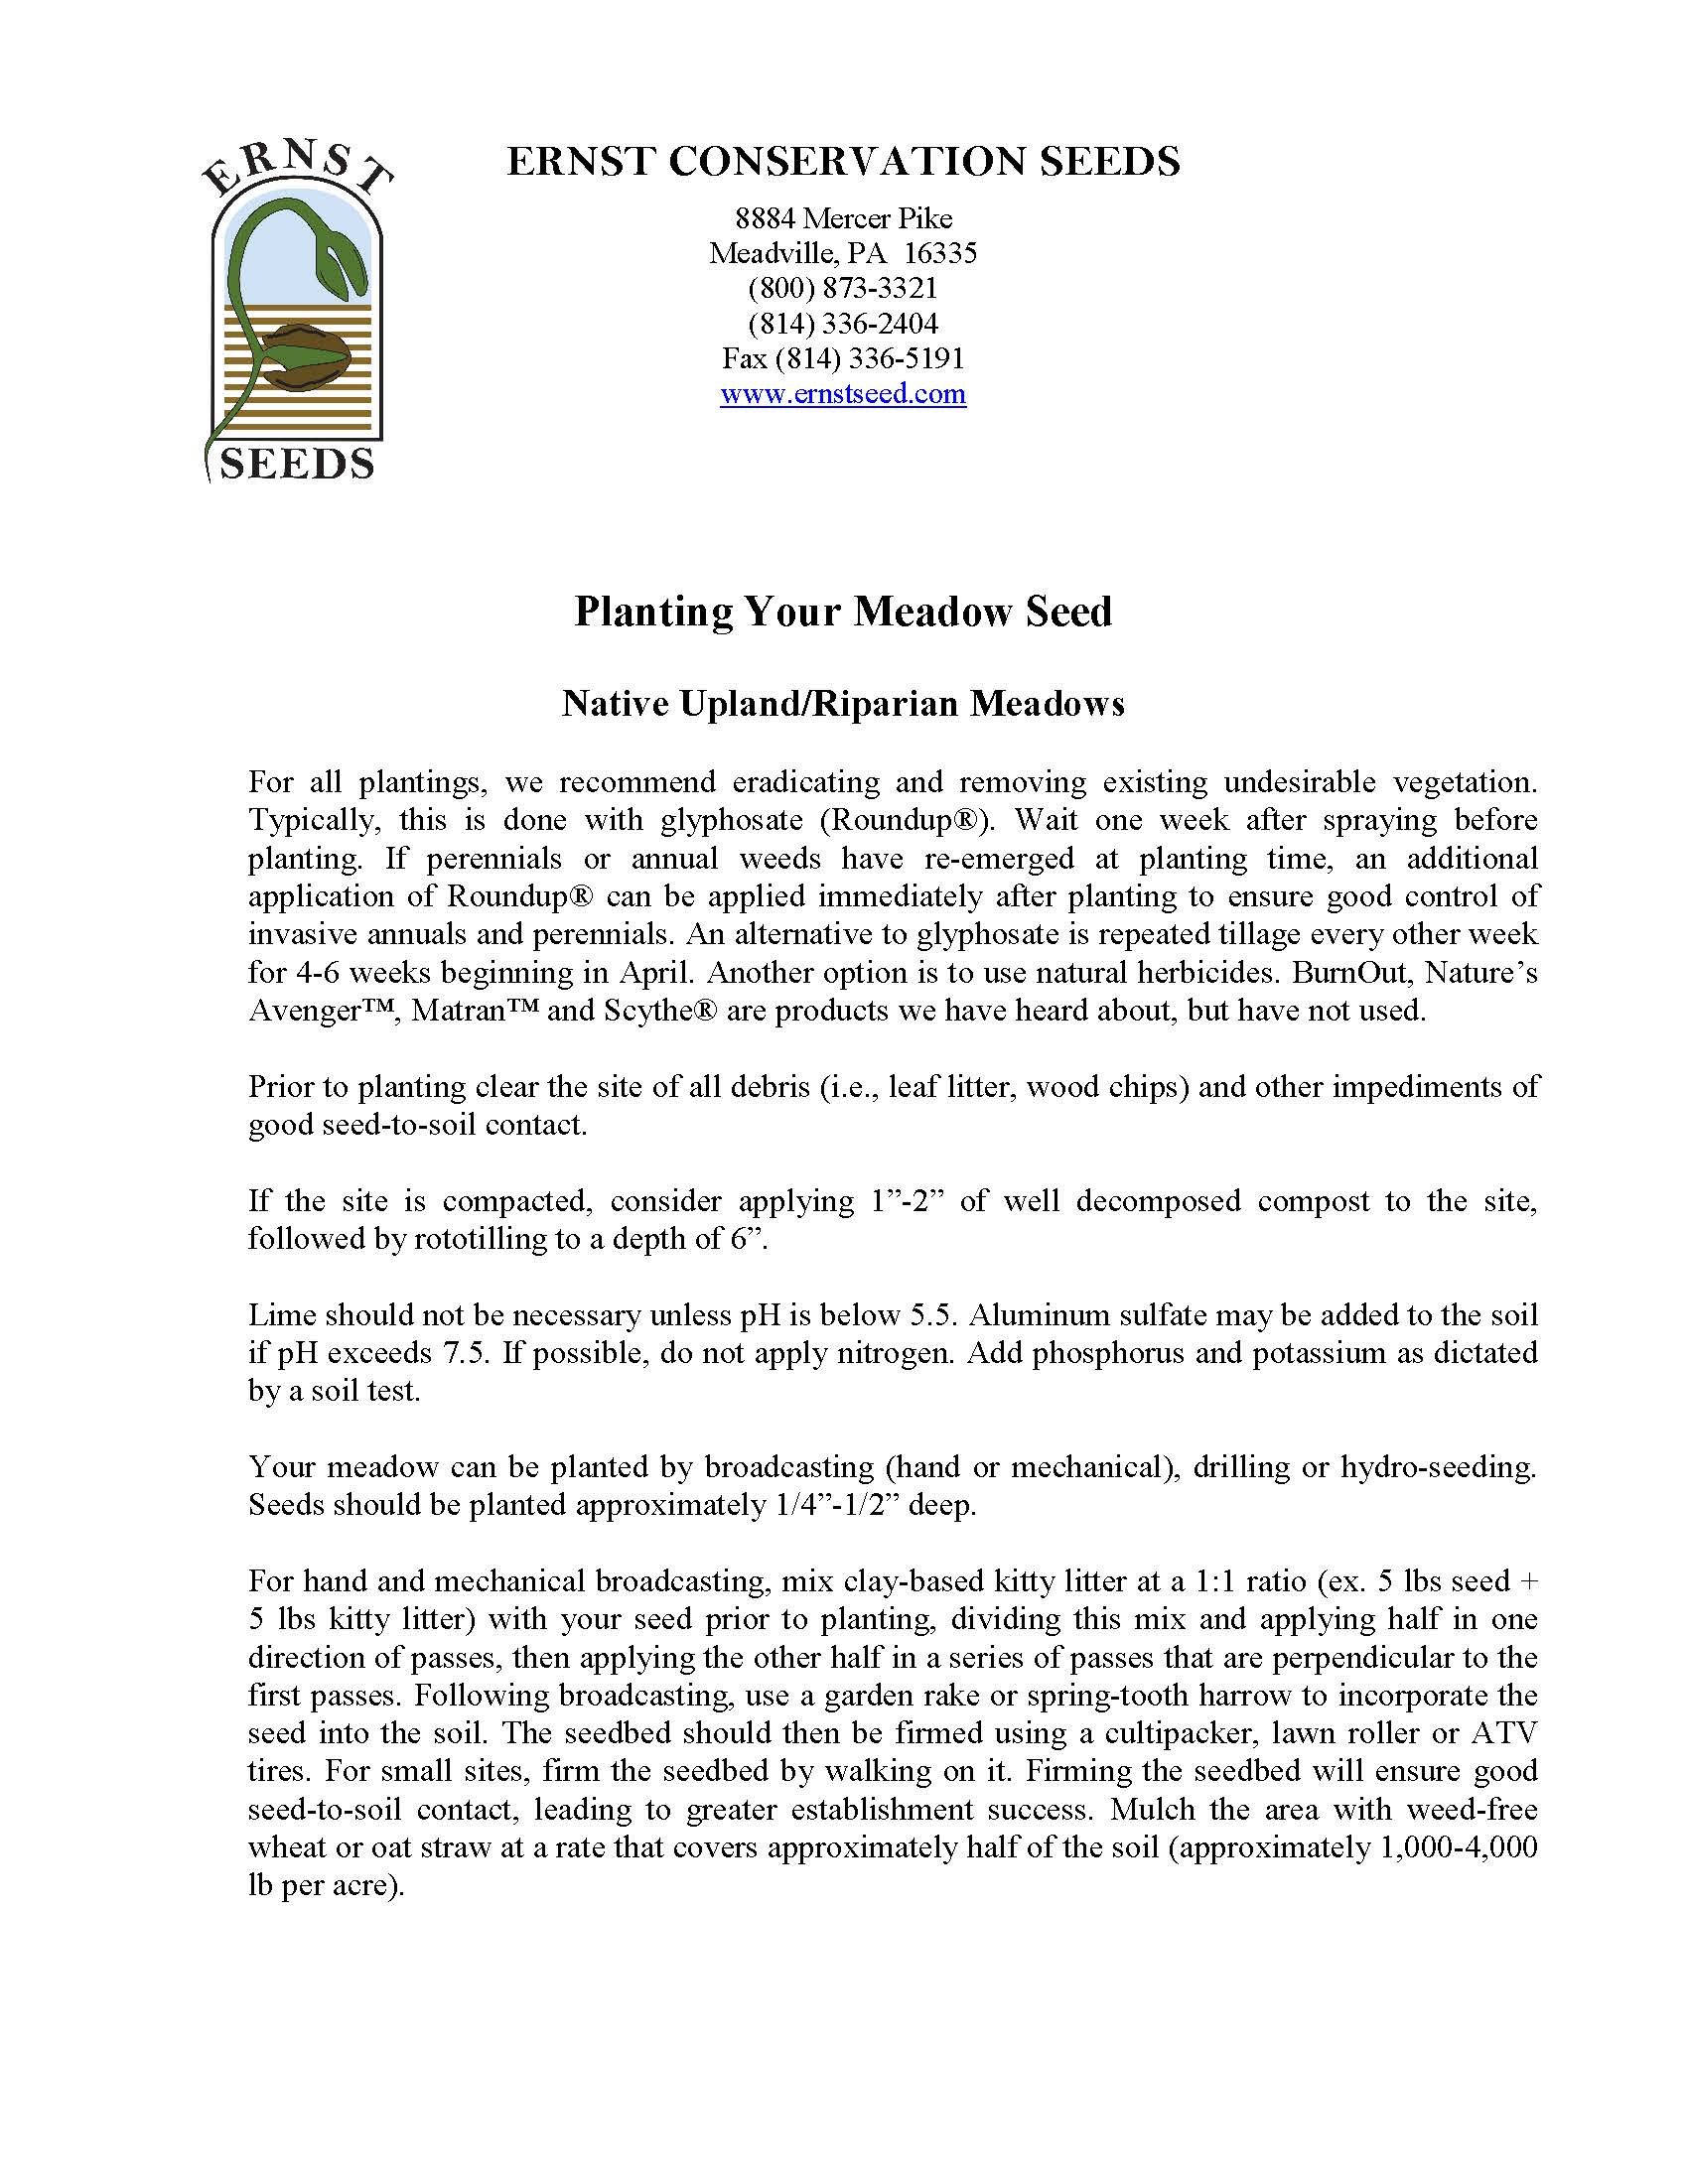 Planting Your Meadow Seed Guide Page 1 Image